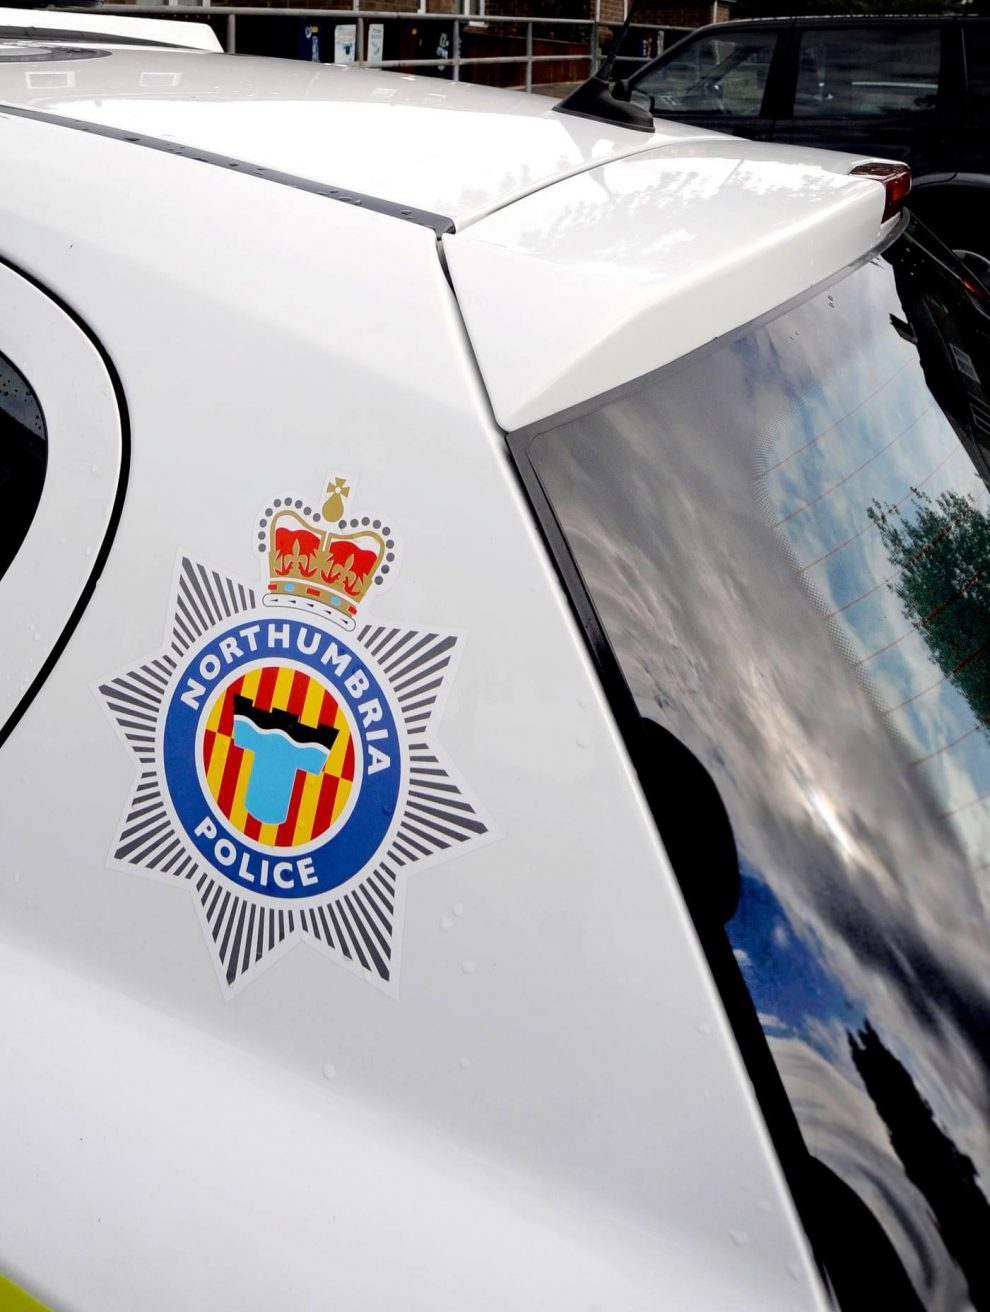 Police are issuing an urgent drugs warning following the tragic deaths of four young people over the weekend, UKNIP